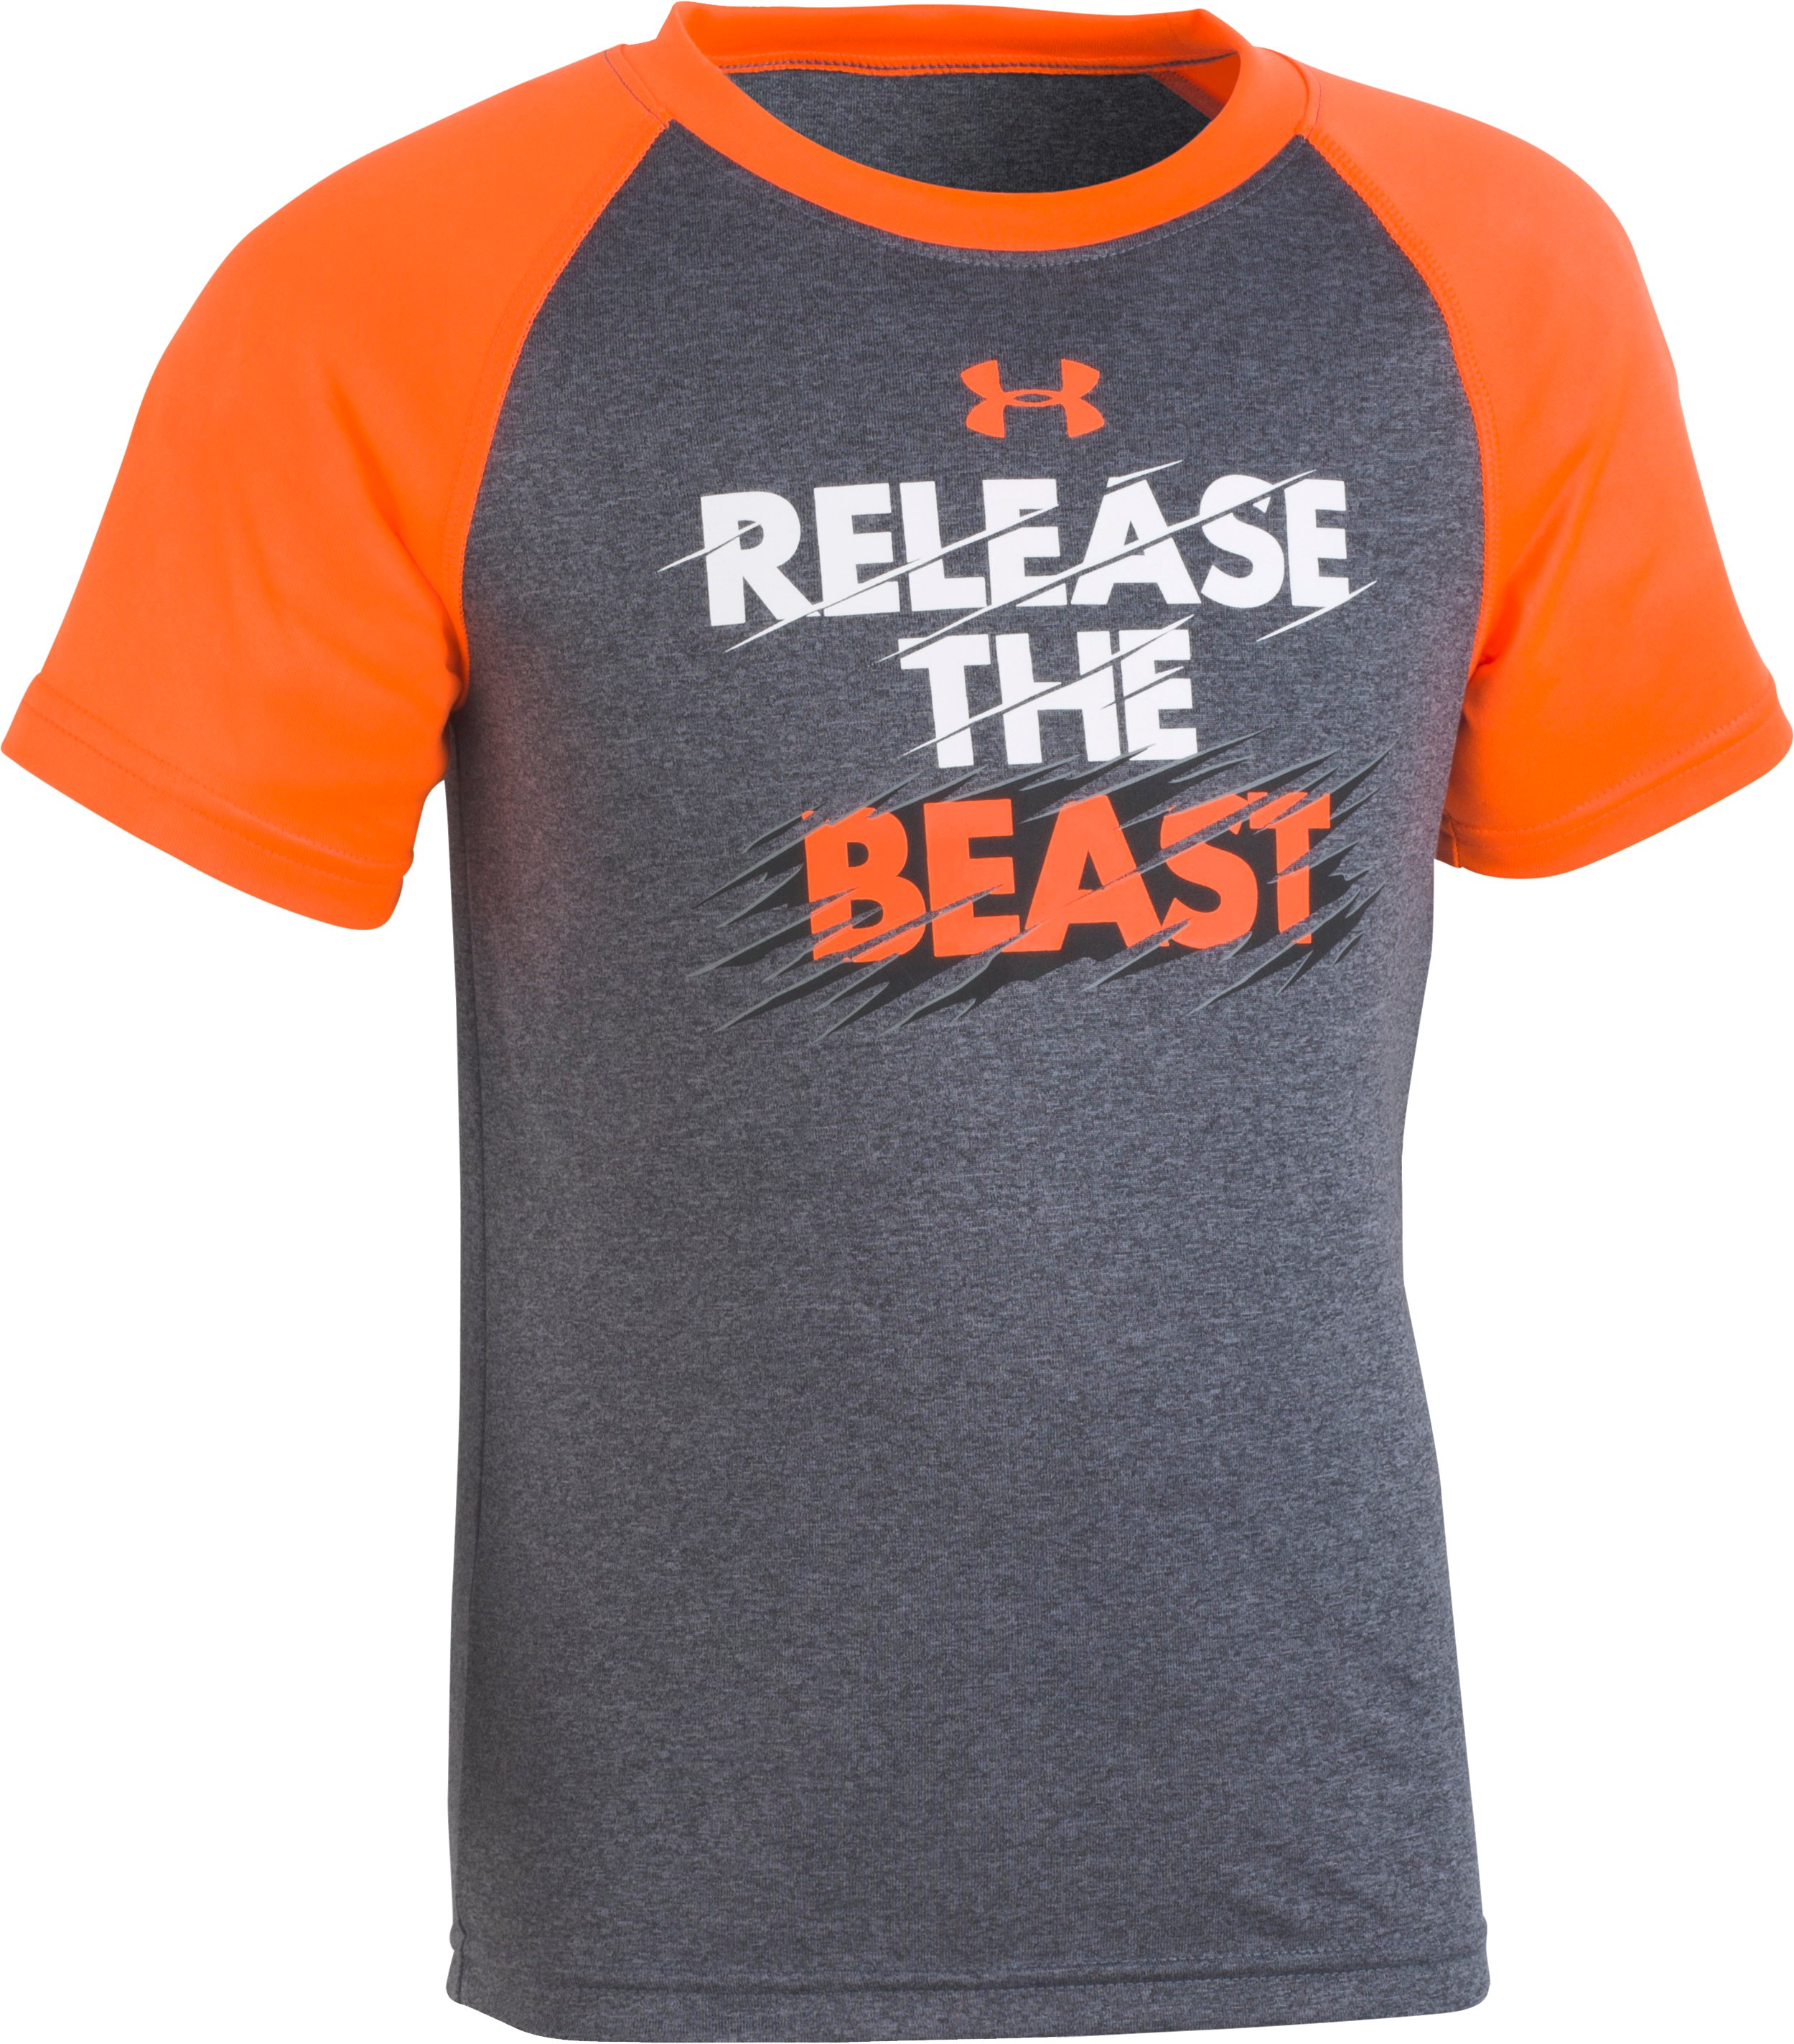 Boys' Toddler UA Release The Beast T-Shirt , Charcoal Medium Heather